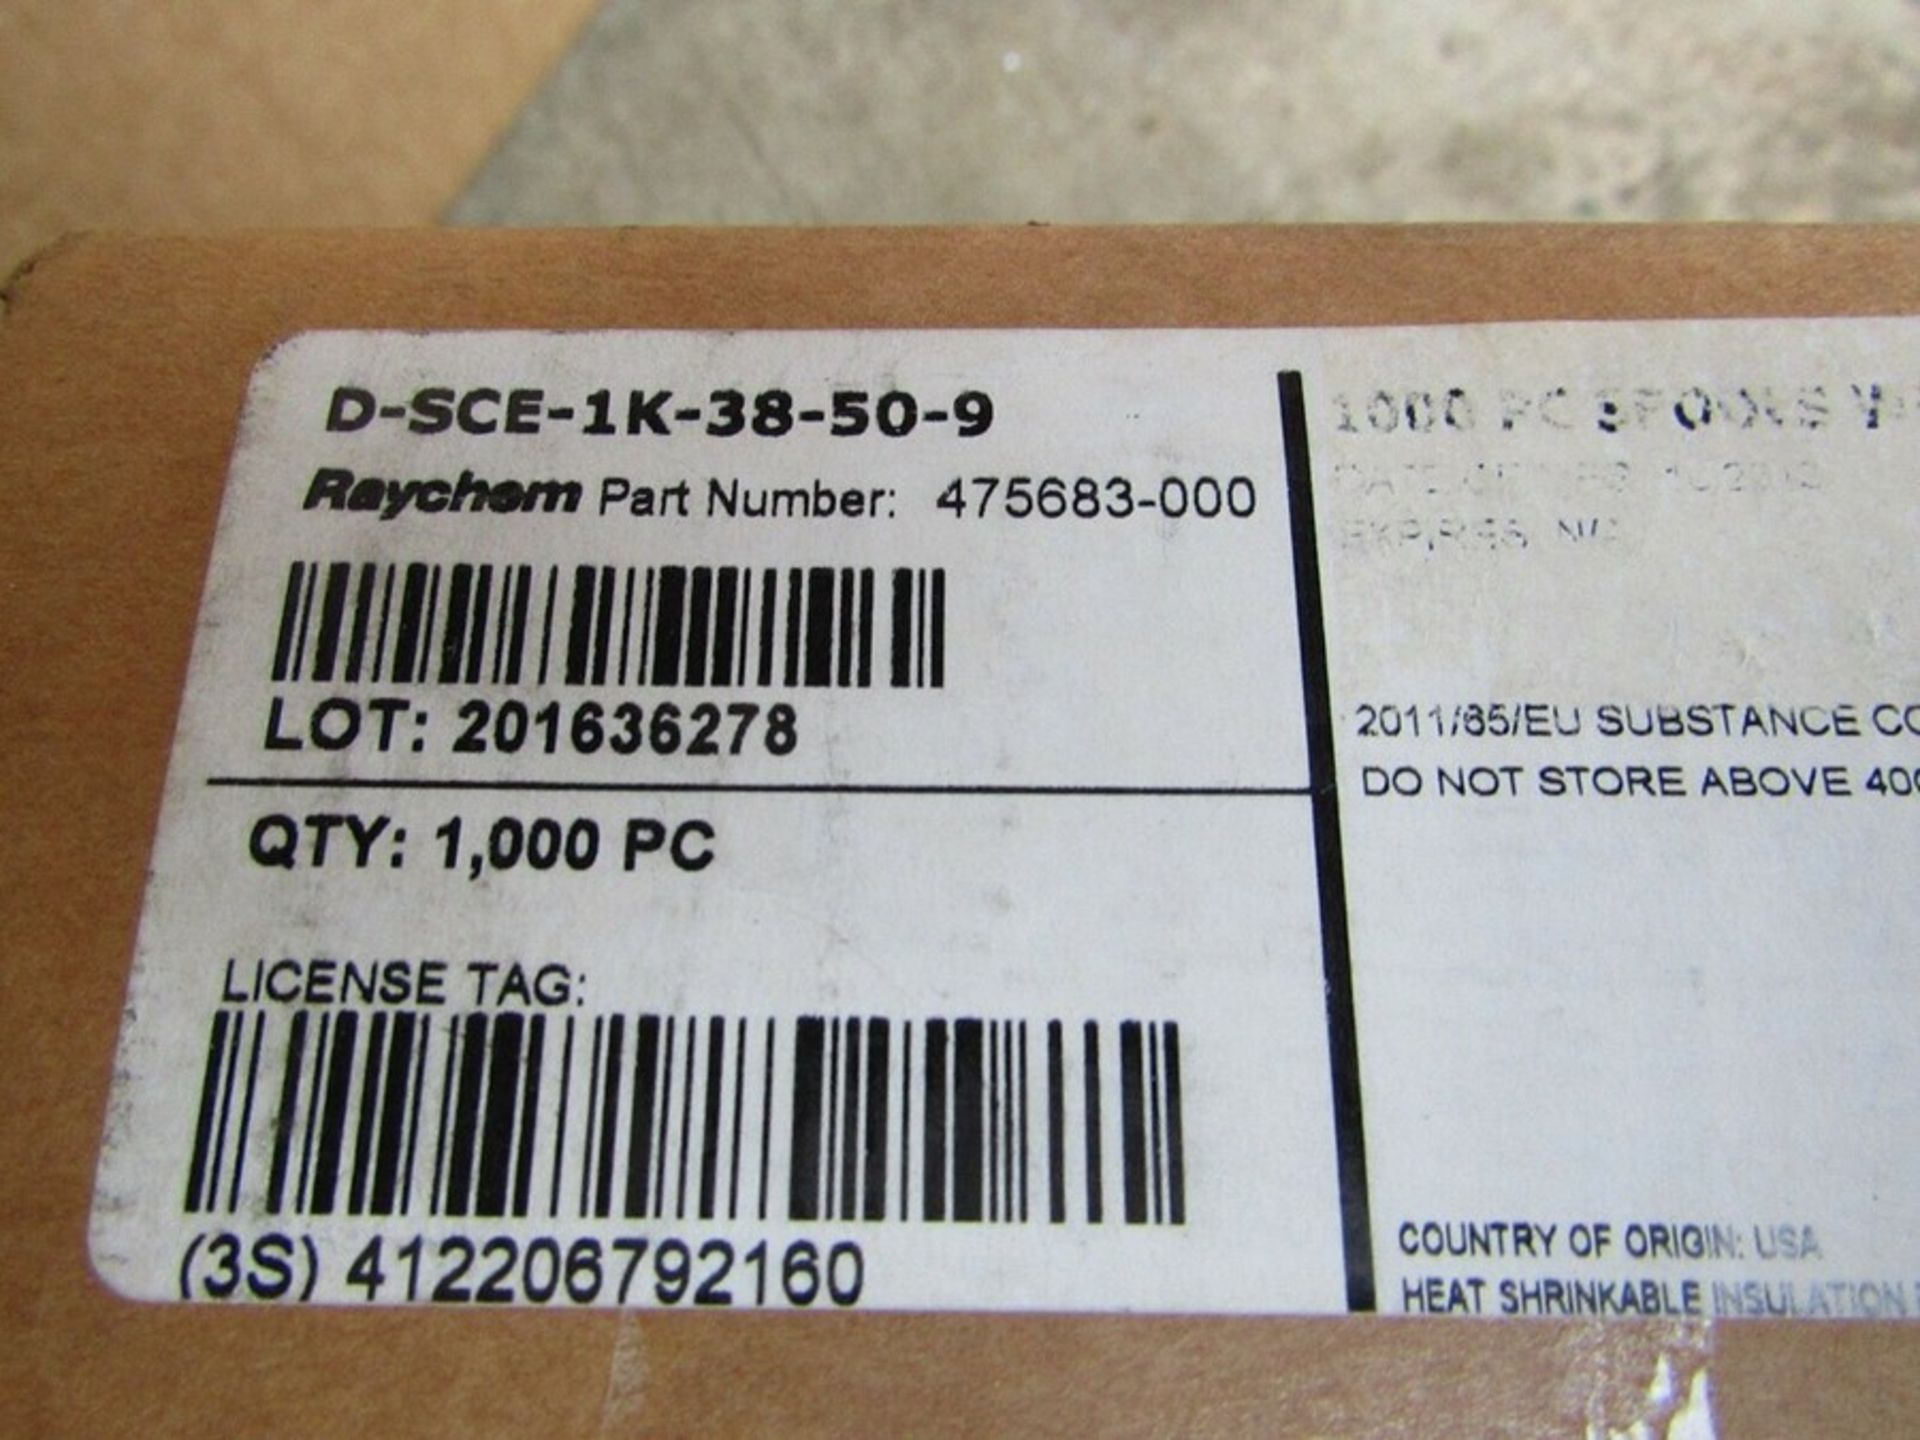 Box of 1000 TE Connectivity D-SCE Heat Shrink Cable Marker White 1005fc 8967825 - Image 2 of 3